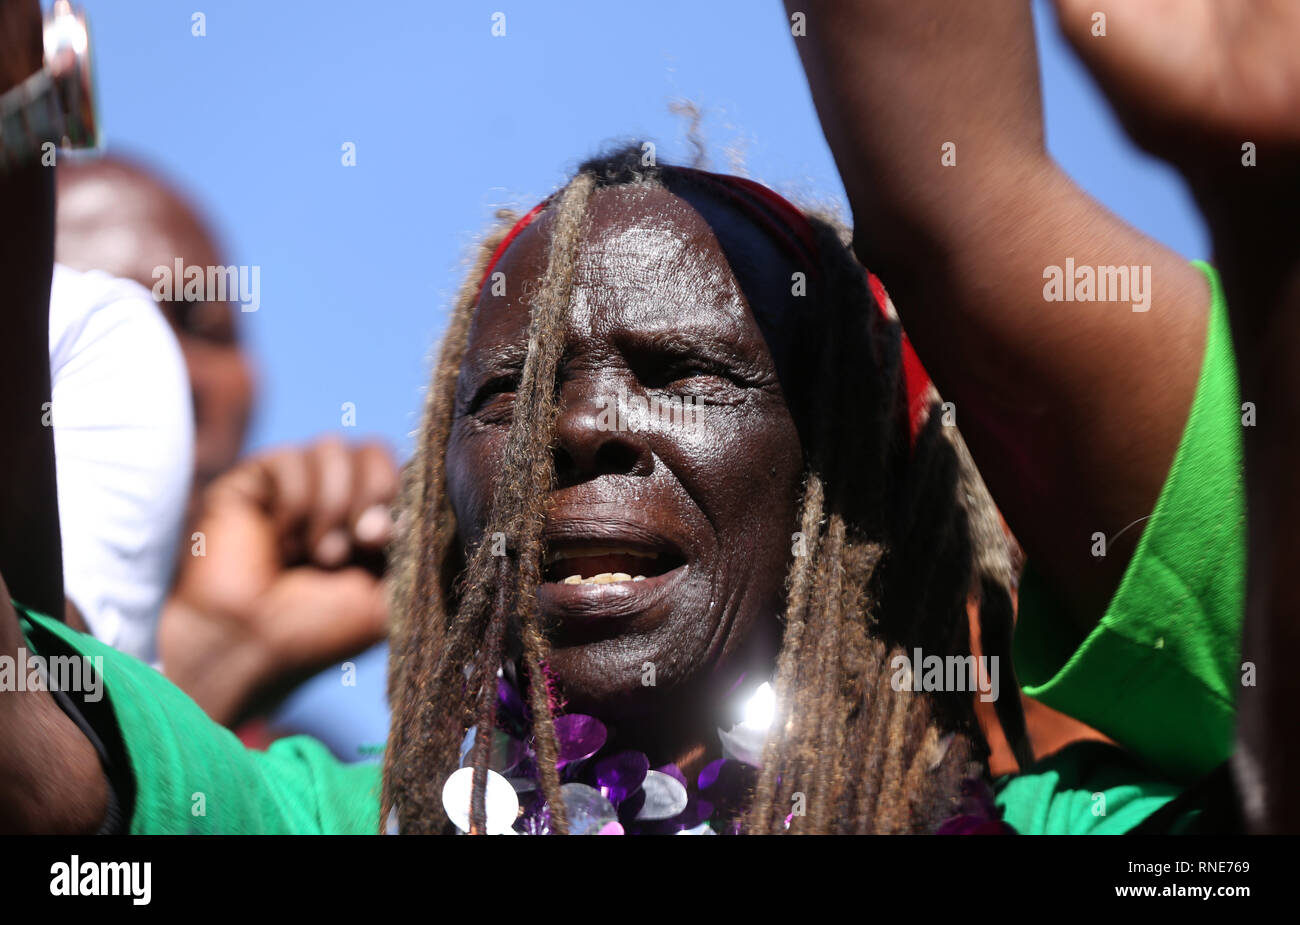 Nyeri, Kenya. 18th Feb, 2019. Some of the freedom fighters who pulled together under the movement seen reciting songs during the commemoration.Kenya's freedom fighters against British colonial rule called ''˜Mau Mau' commemorated the execution of their leader Dedan Kimathi on February 18, 1957. His body was buried at an unknown grave, widow Mukami Kimathi wants his grave disclosed and remains exhumed for a decent burial. Credit: Billy Mutai/SOPA Images/ZUMA Wire/Alamy Live News - Stock Image